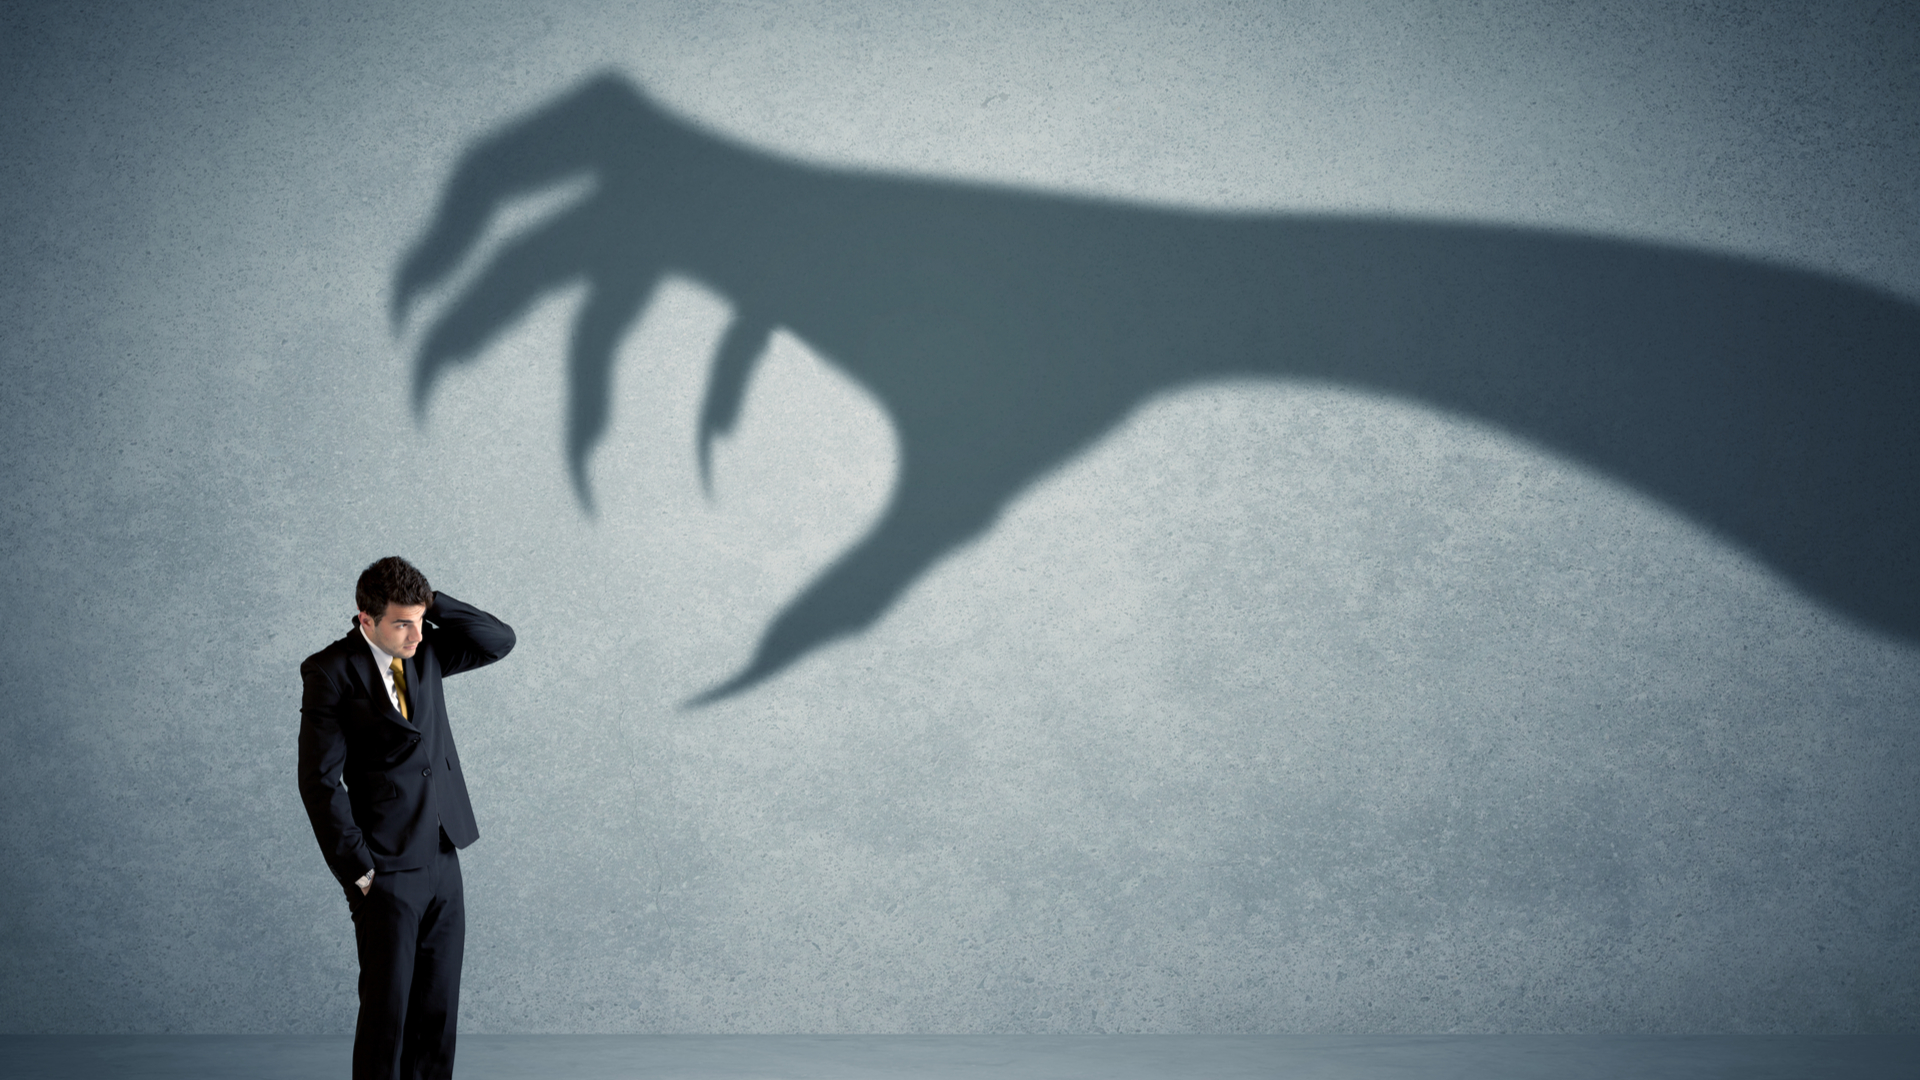 director businessman with scary shadow hand